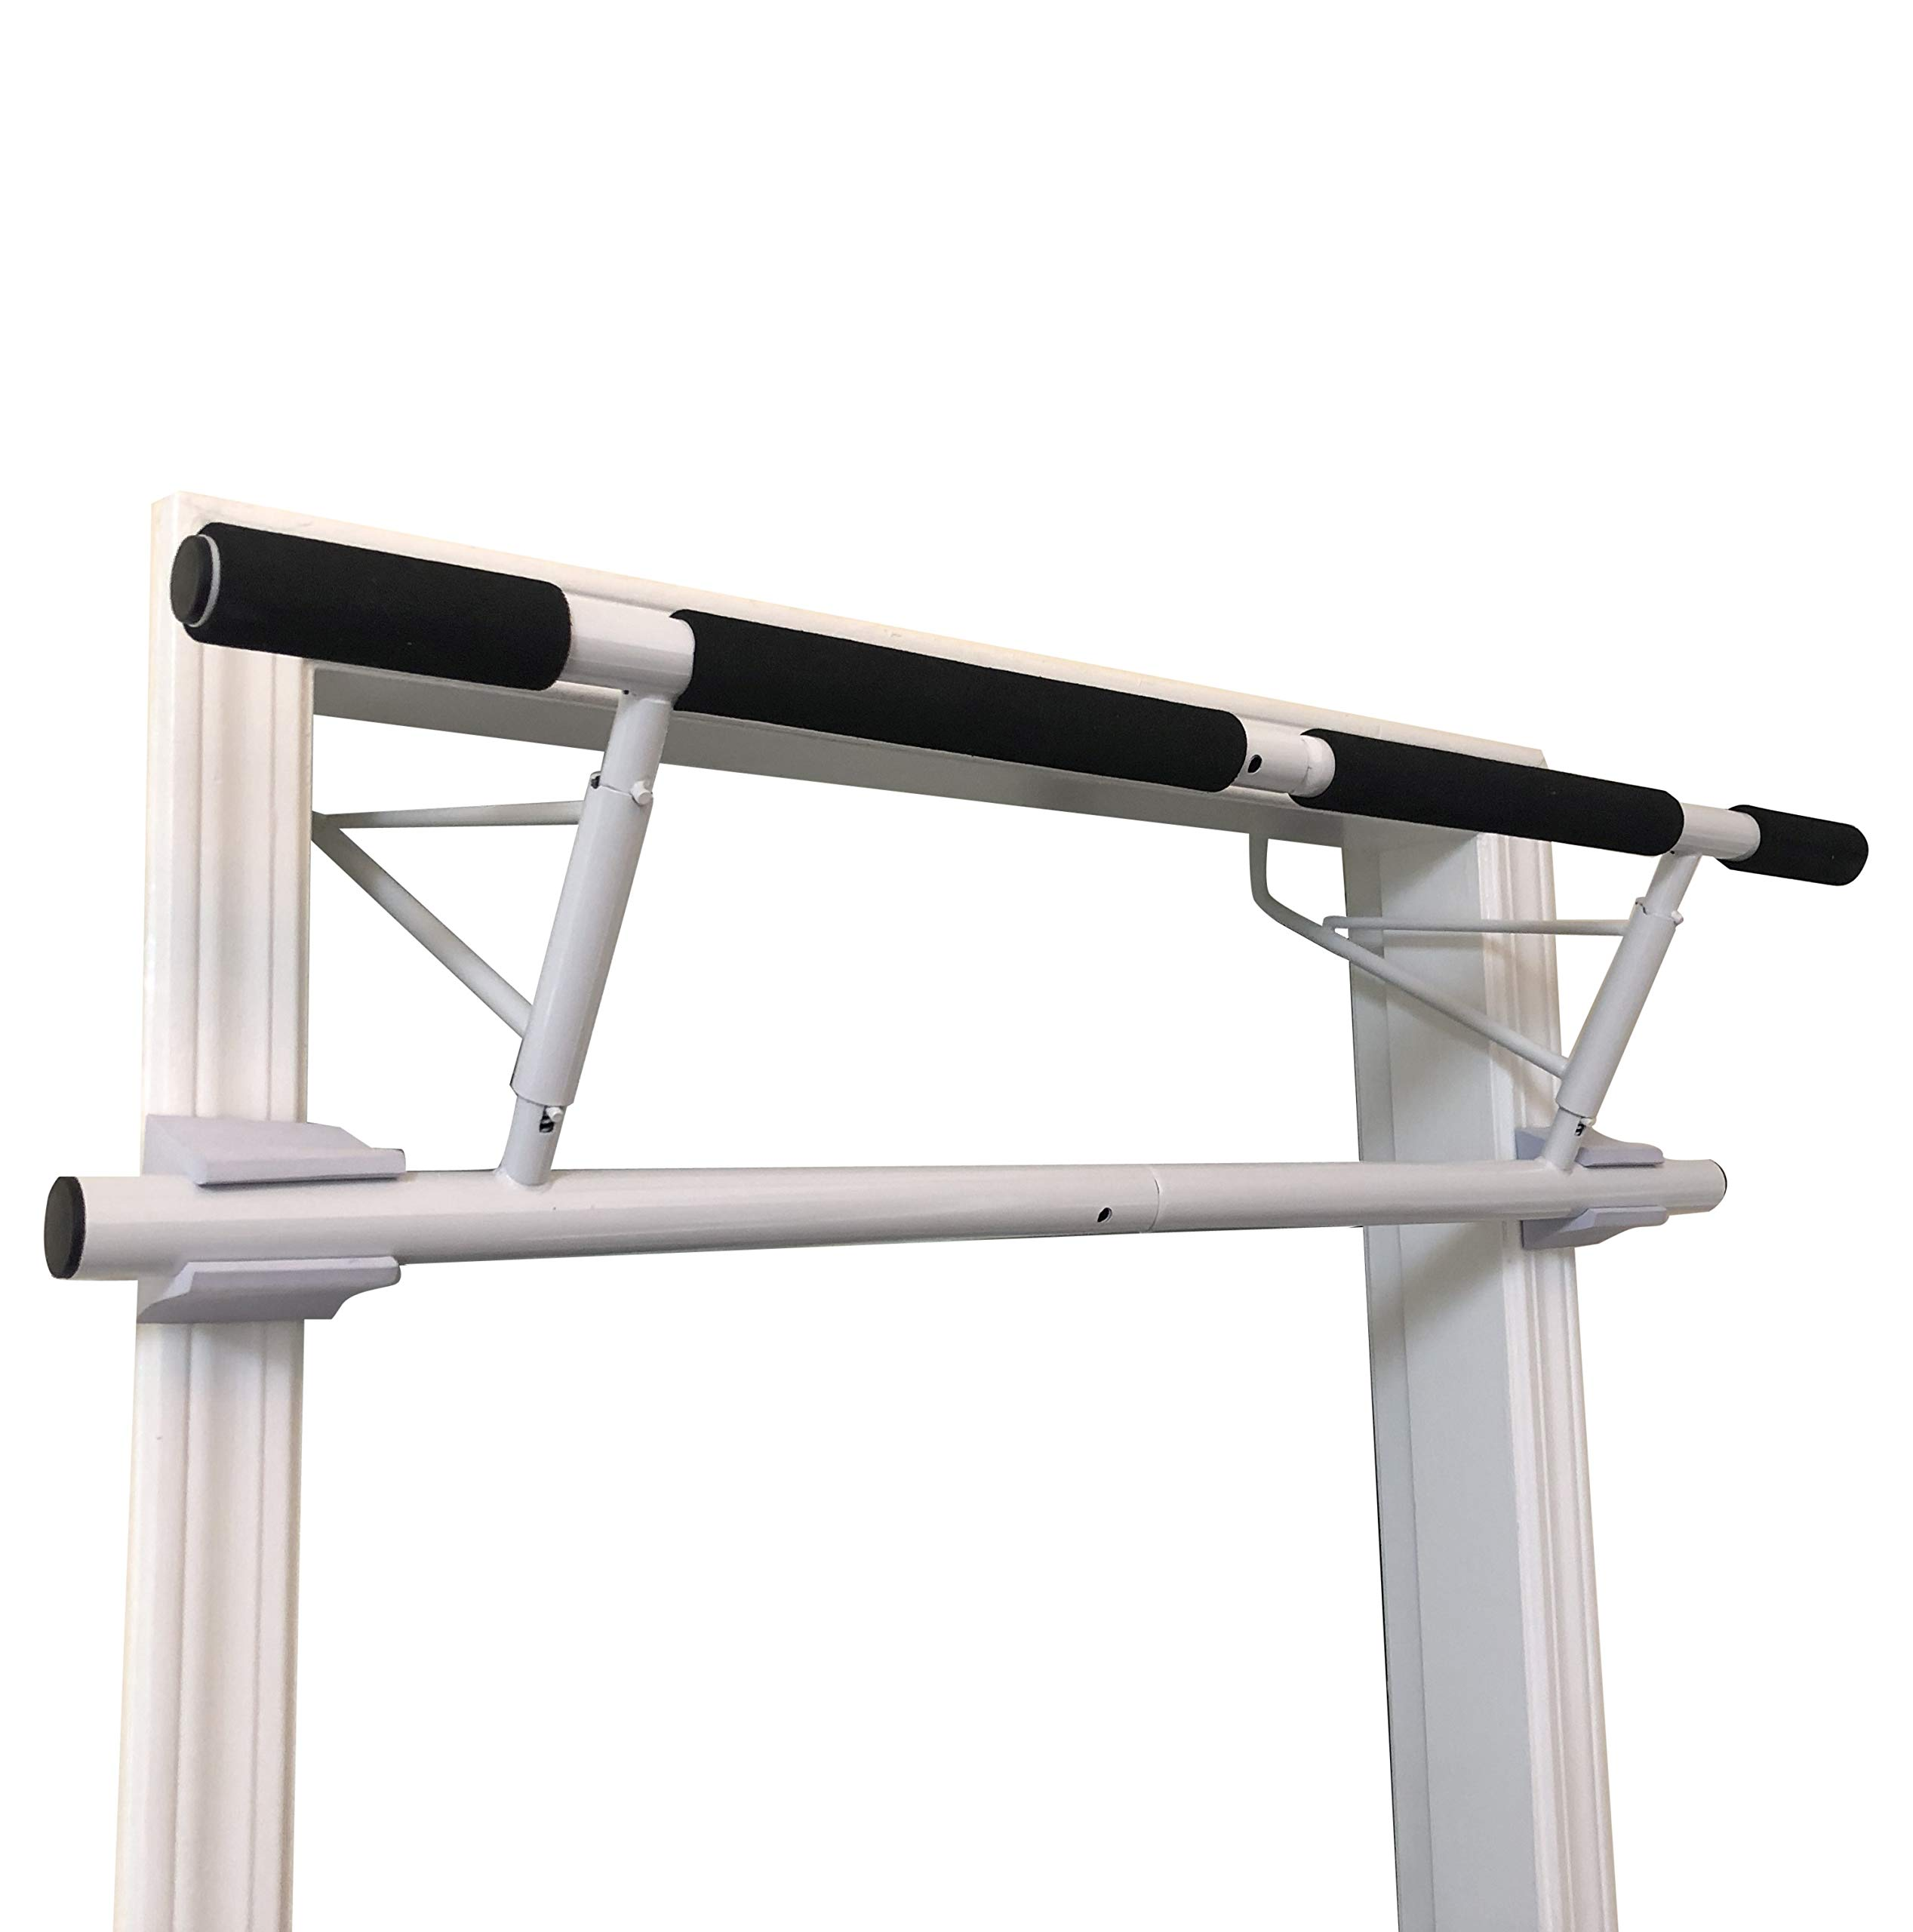 SHAMROCK TRIPLE GYM Pull Up Bar, No Assembly Required, Folds Flat & Comes Apart for Travel Or Storage, USA Shipping and Warranty (White)